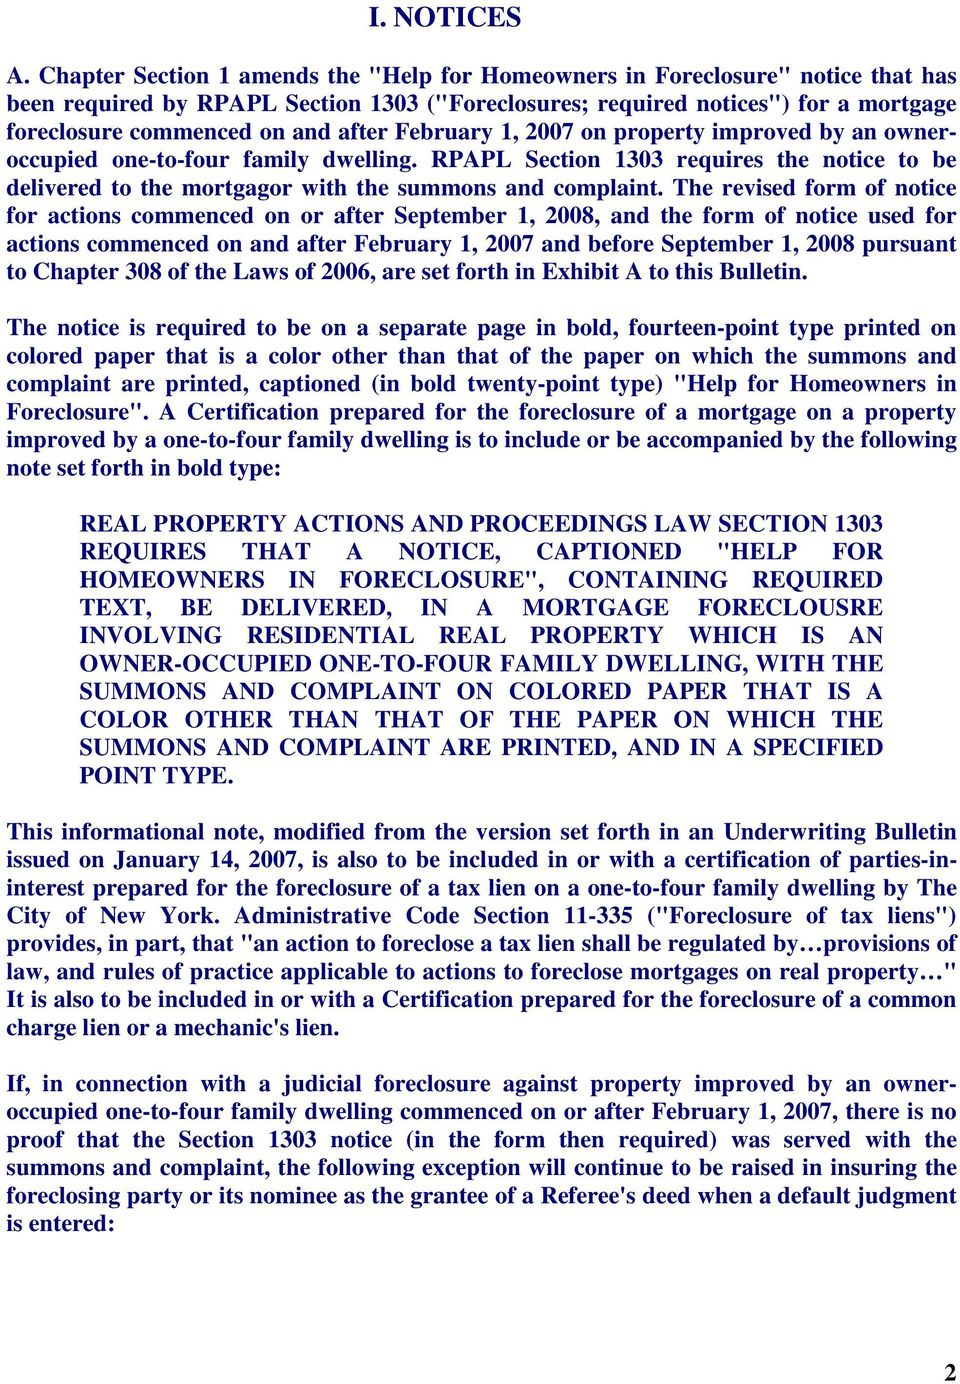 after February 1, 2007 on property improved by an owneroccupied one-to-four family dwelling. RPAPL Section 1303 requires the notice to be delivered to the mortgagor with the summons and complaint.